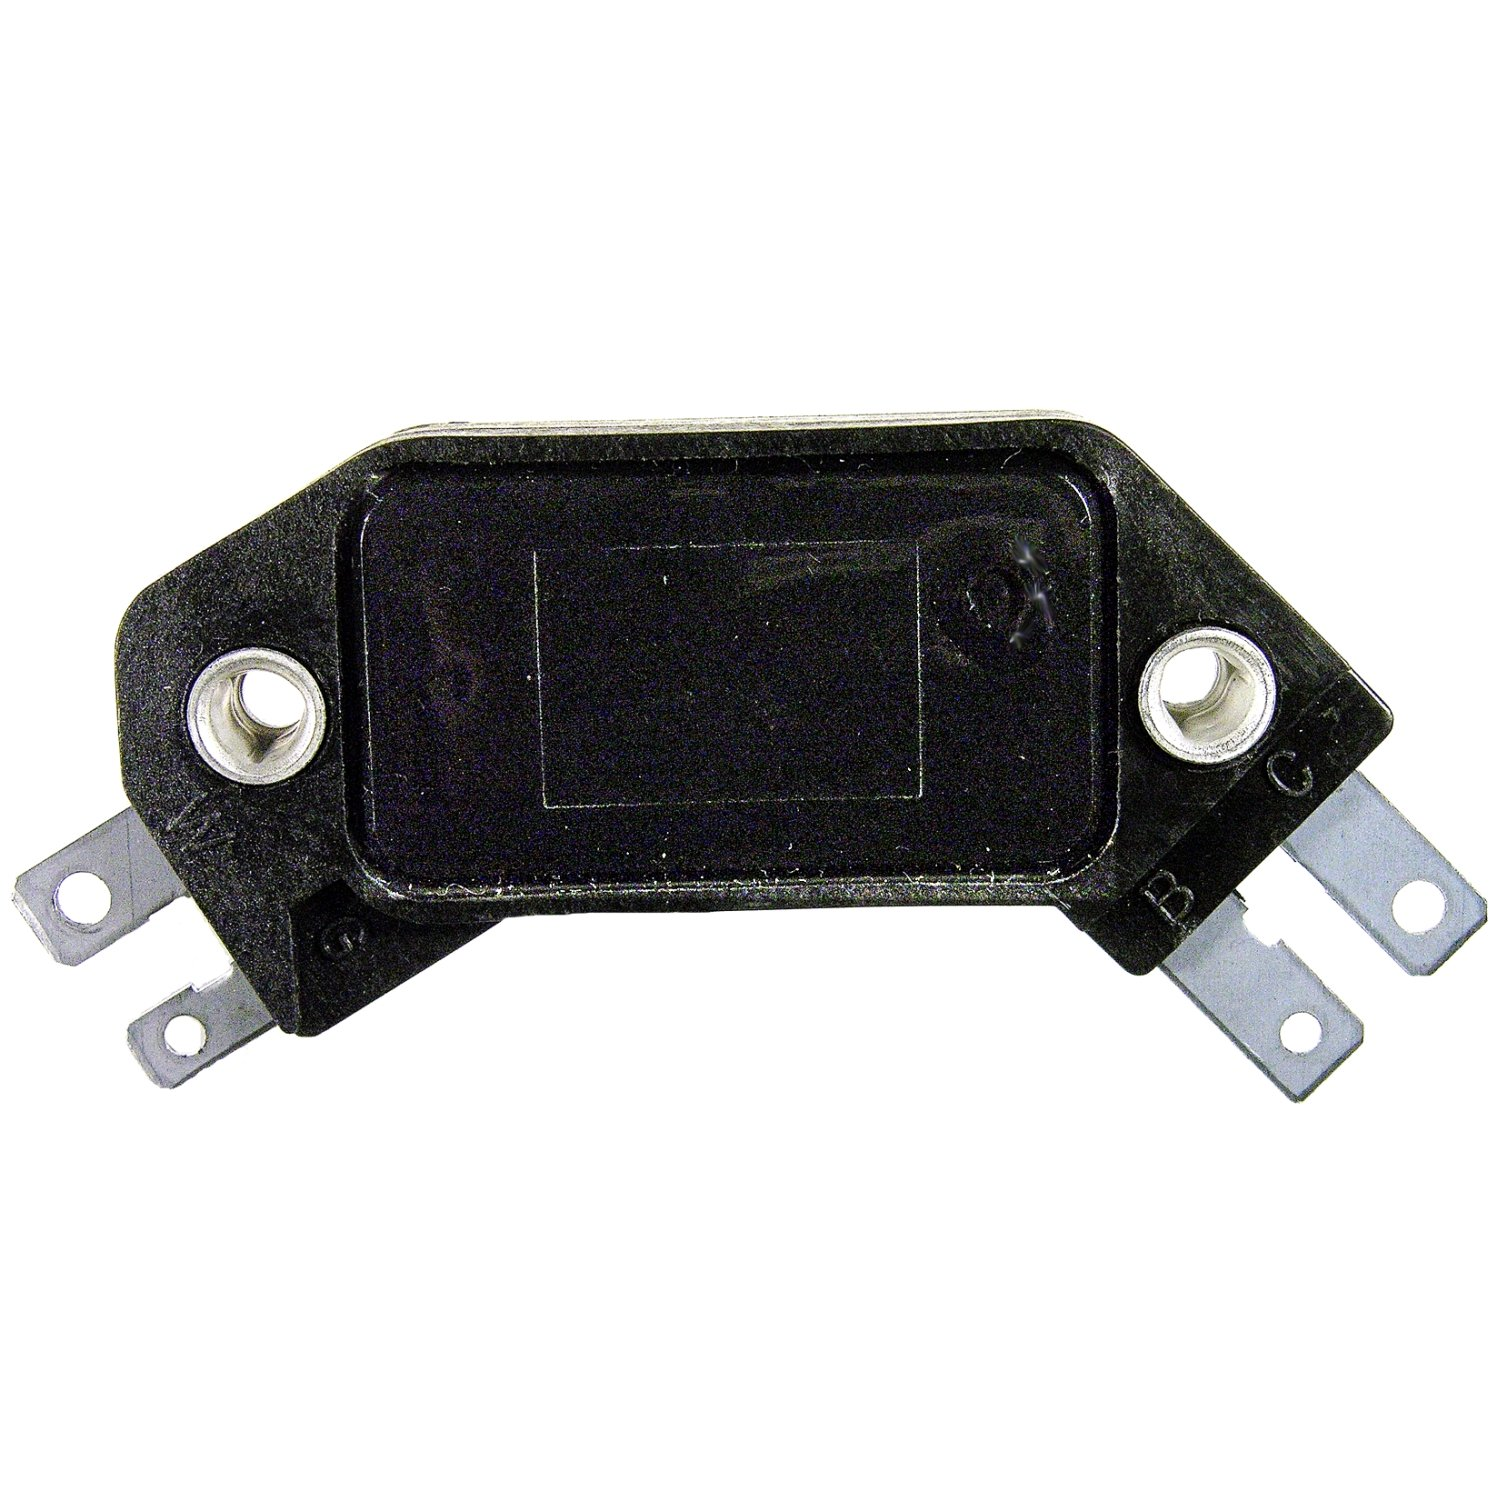 Acdelco D1906 Professional Ignition Control Module 78 Gm Hei Automotive